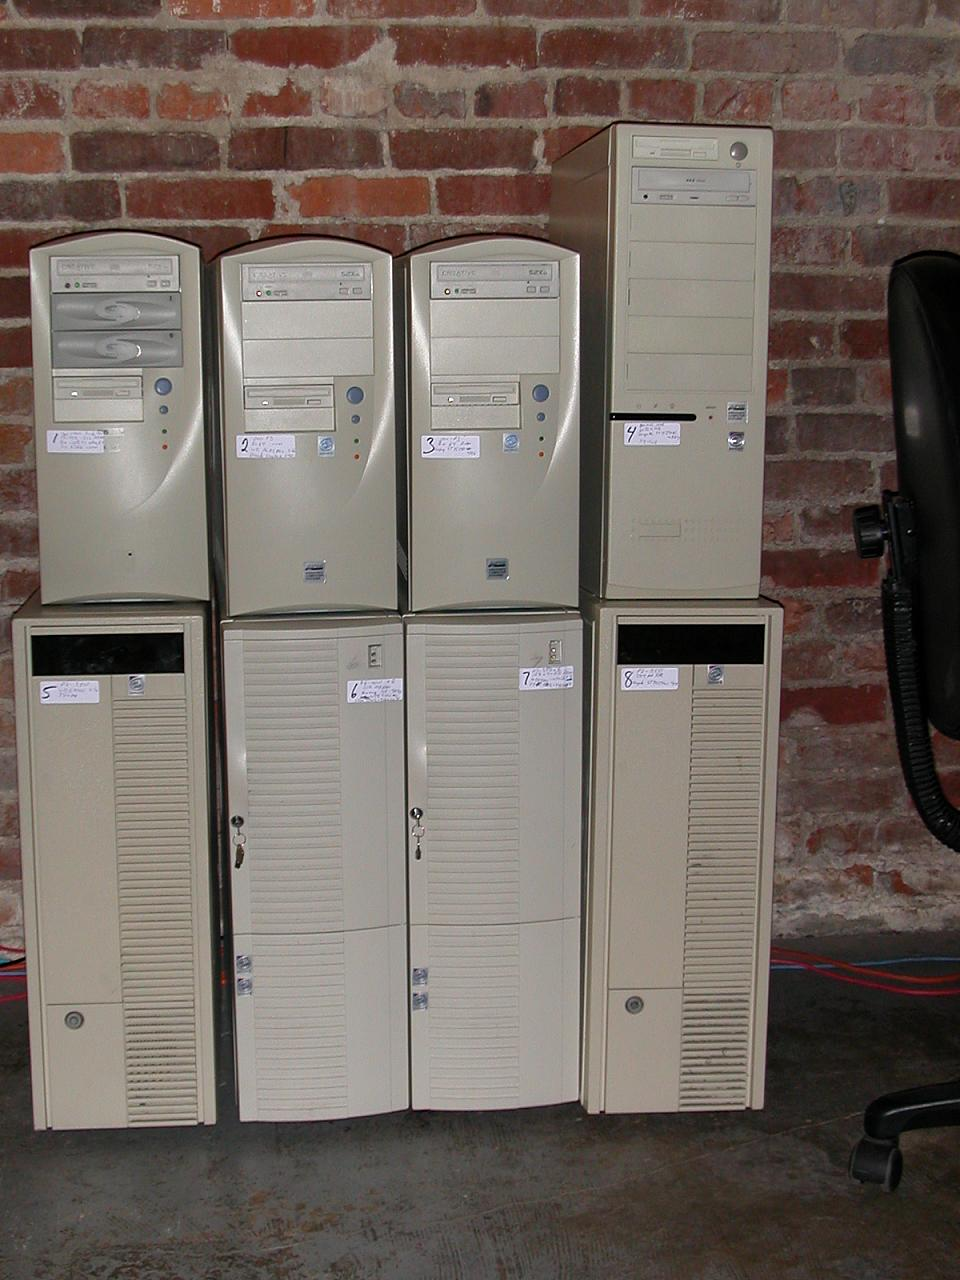 Old servers from an ISP we purchased that are currently not in use.